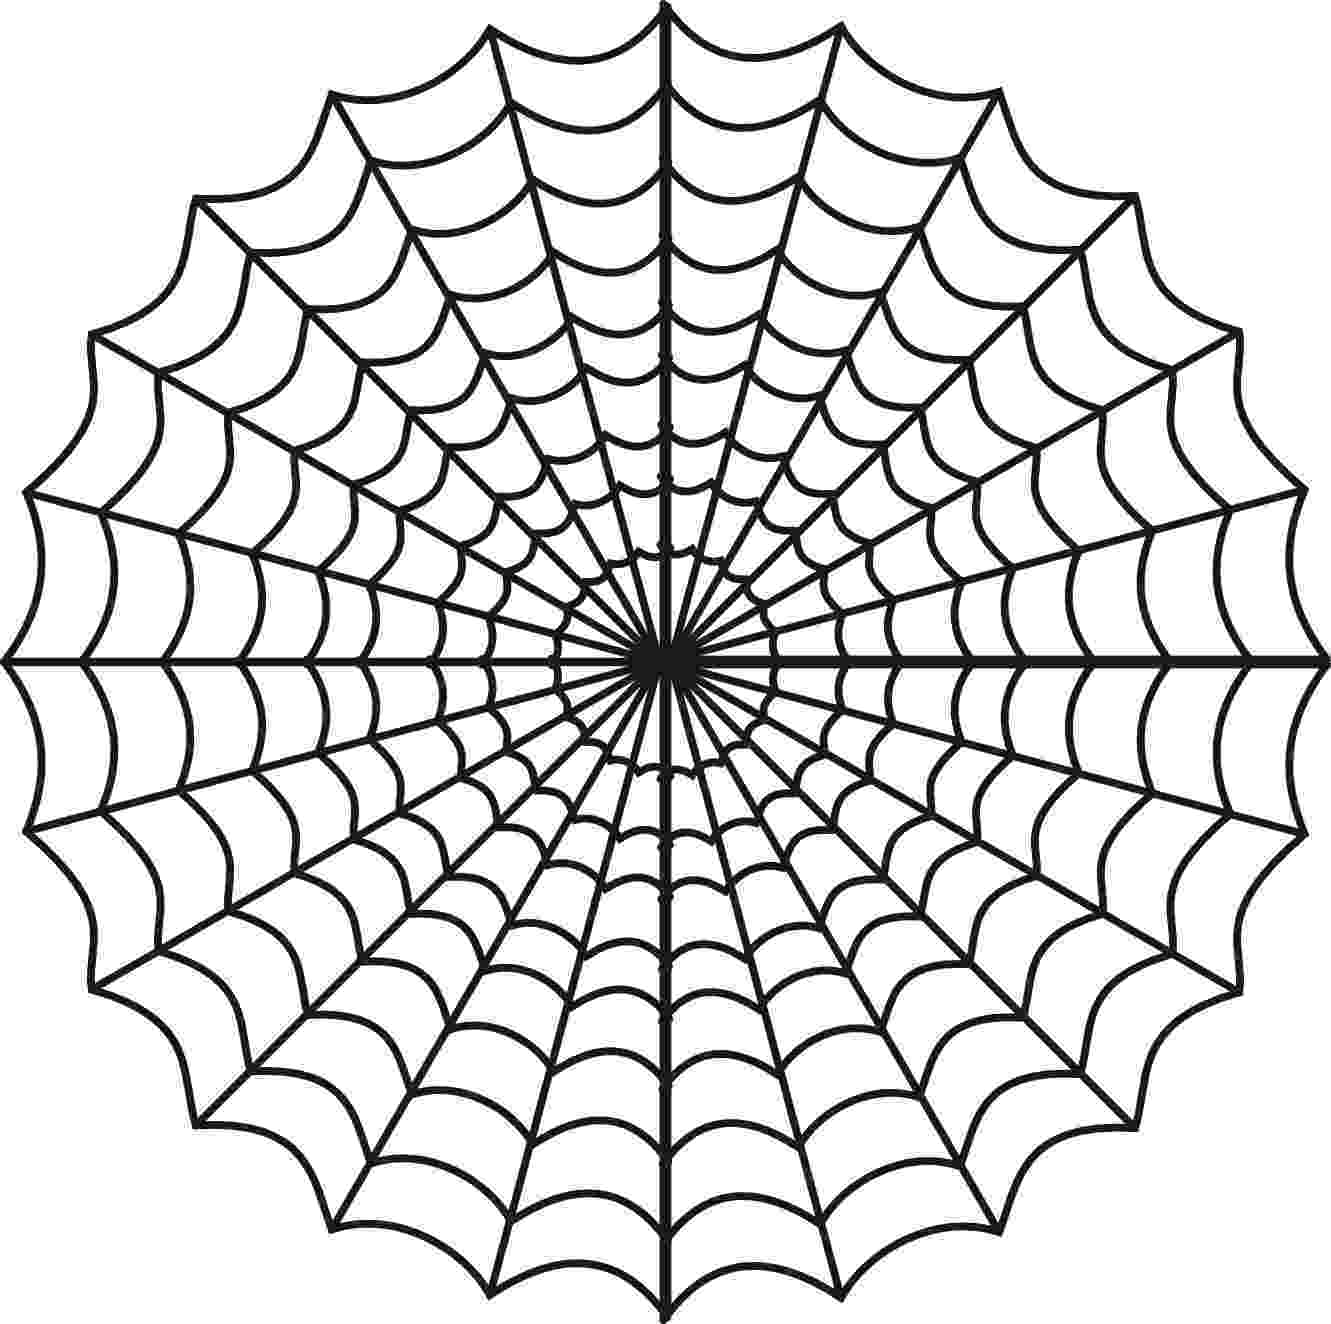 spider web coloring page free printable spider web coloring pages for kids coloring page spider web